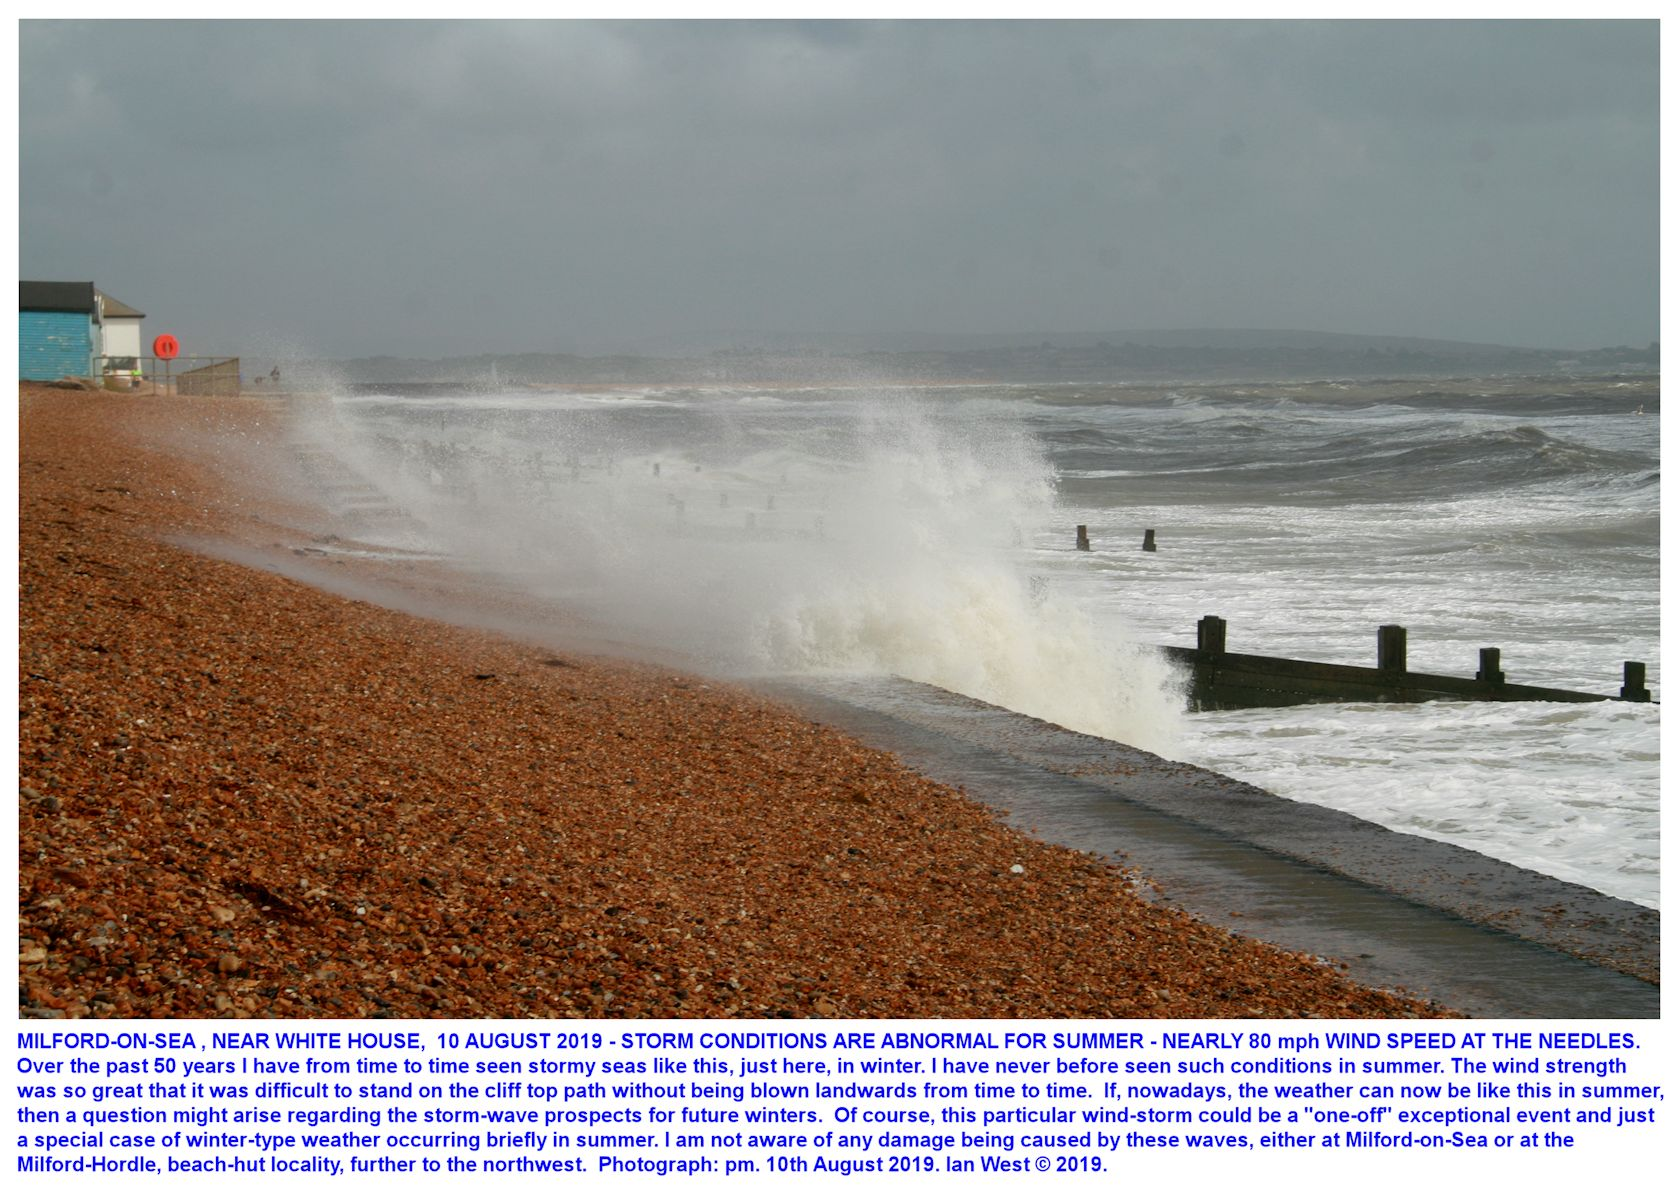 Stormy sea conditions, unusual in summer, just northwest of the White House, Milford-on-Sea, 10th August, 2019